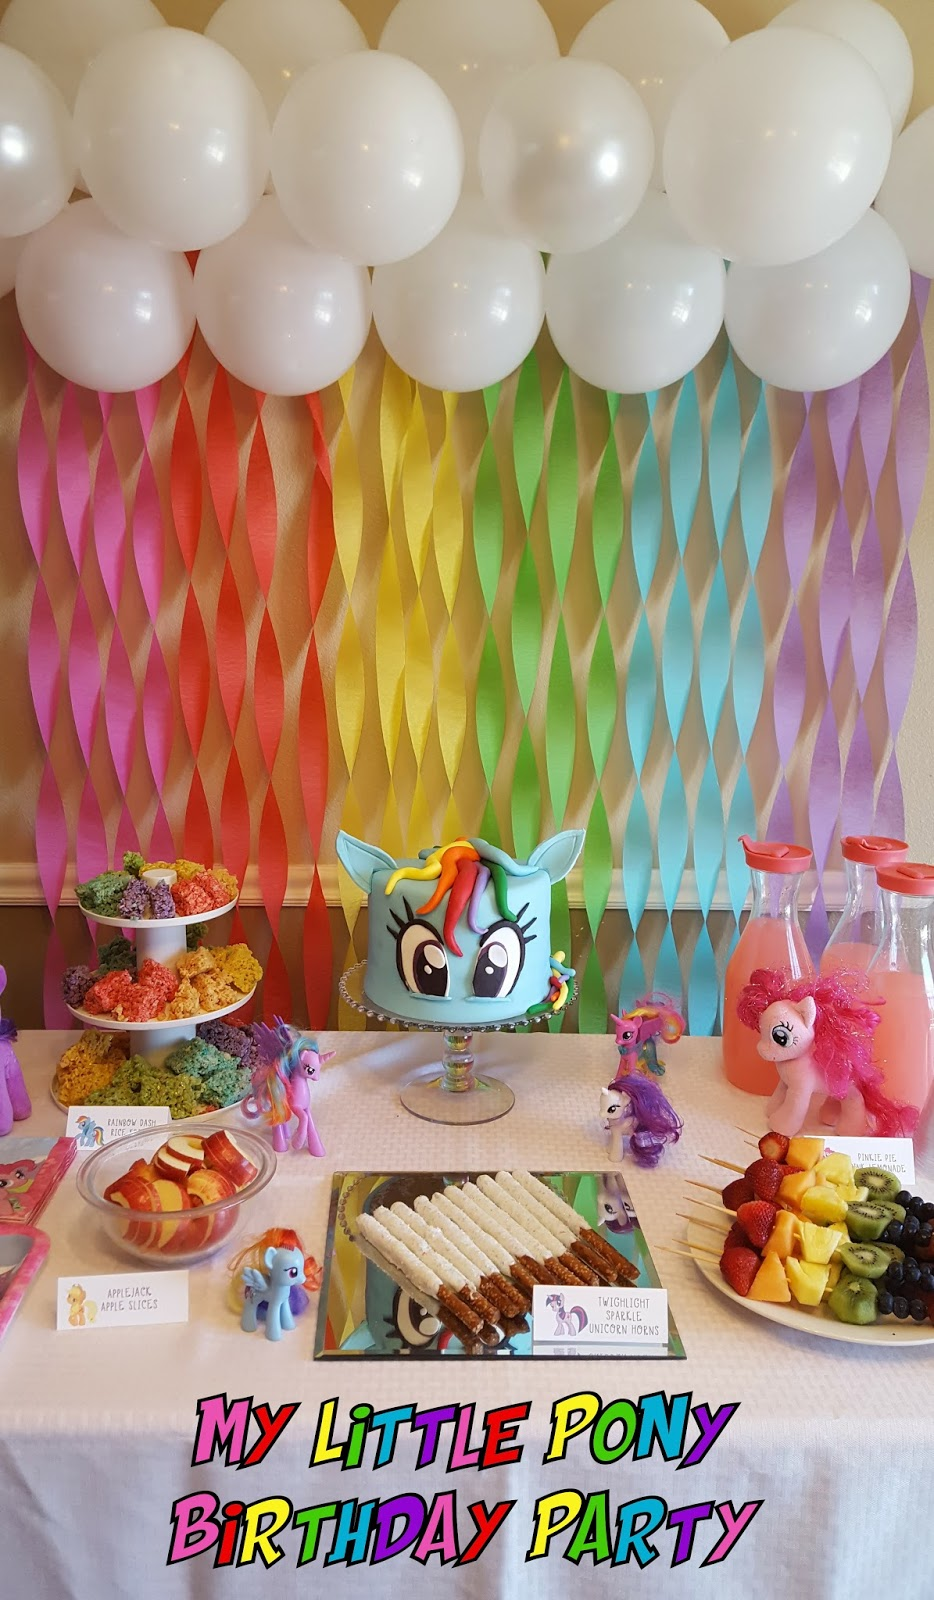 my little pony birthday party Patty Cakes Bakery: My Little Pony Birthday Party my little pony birthday party